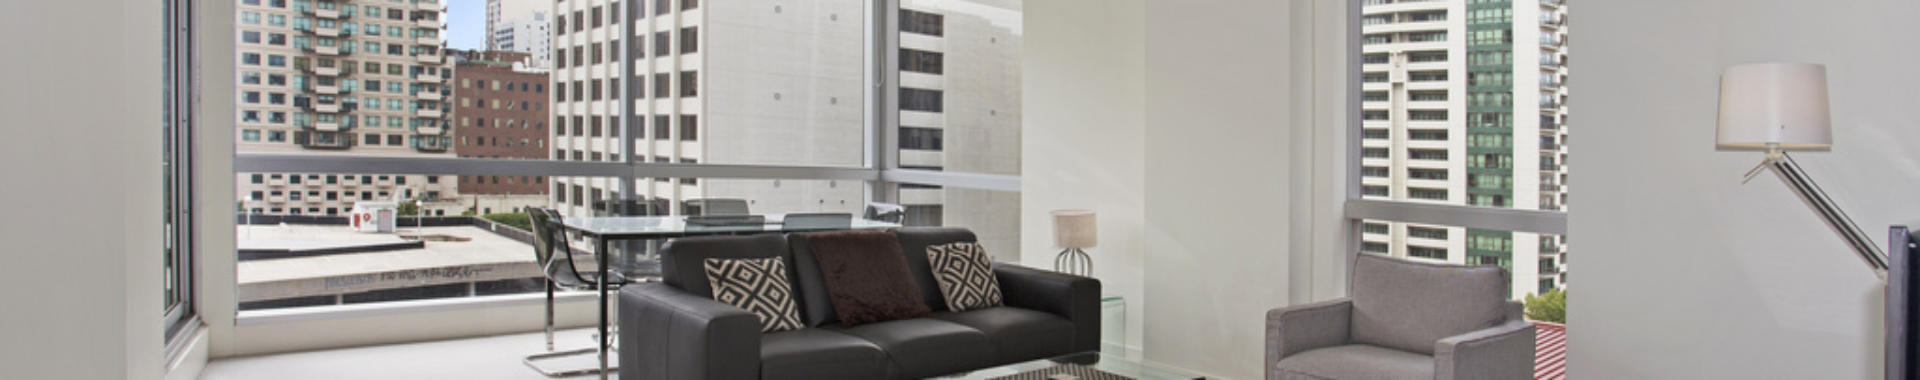 Melbourne JaneBell 2 bed 1 bath corporate apartment lounge